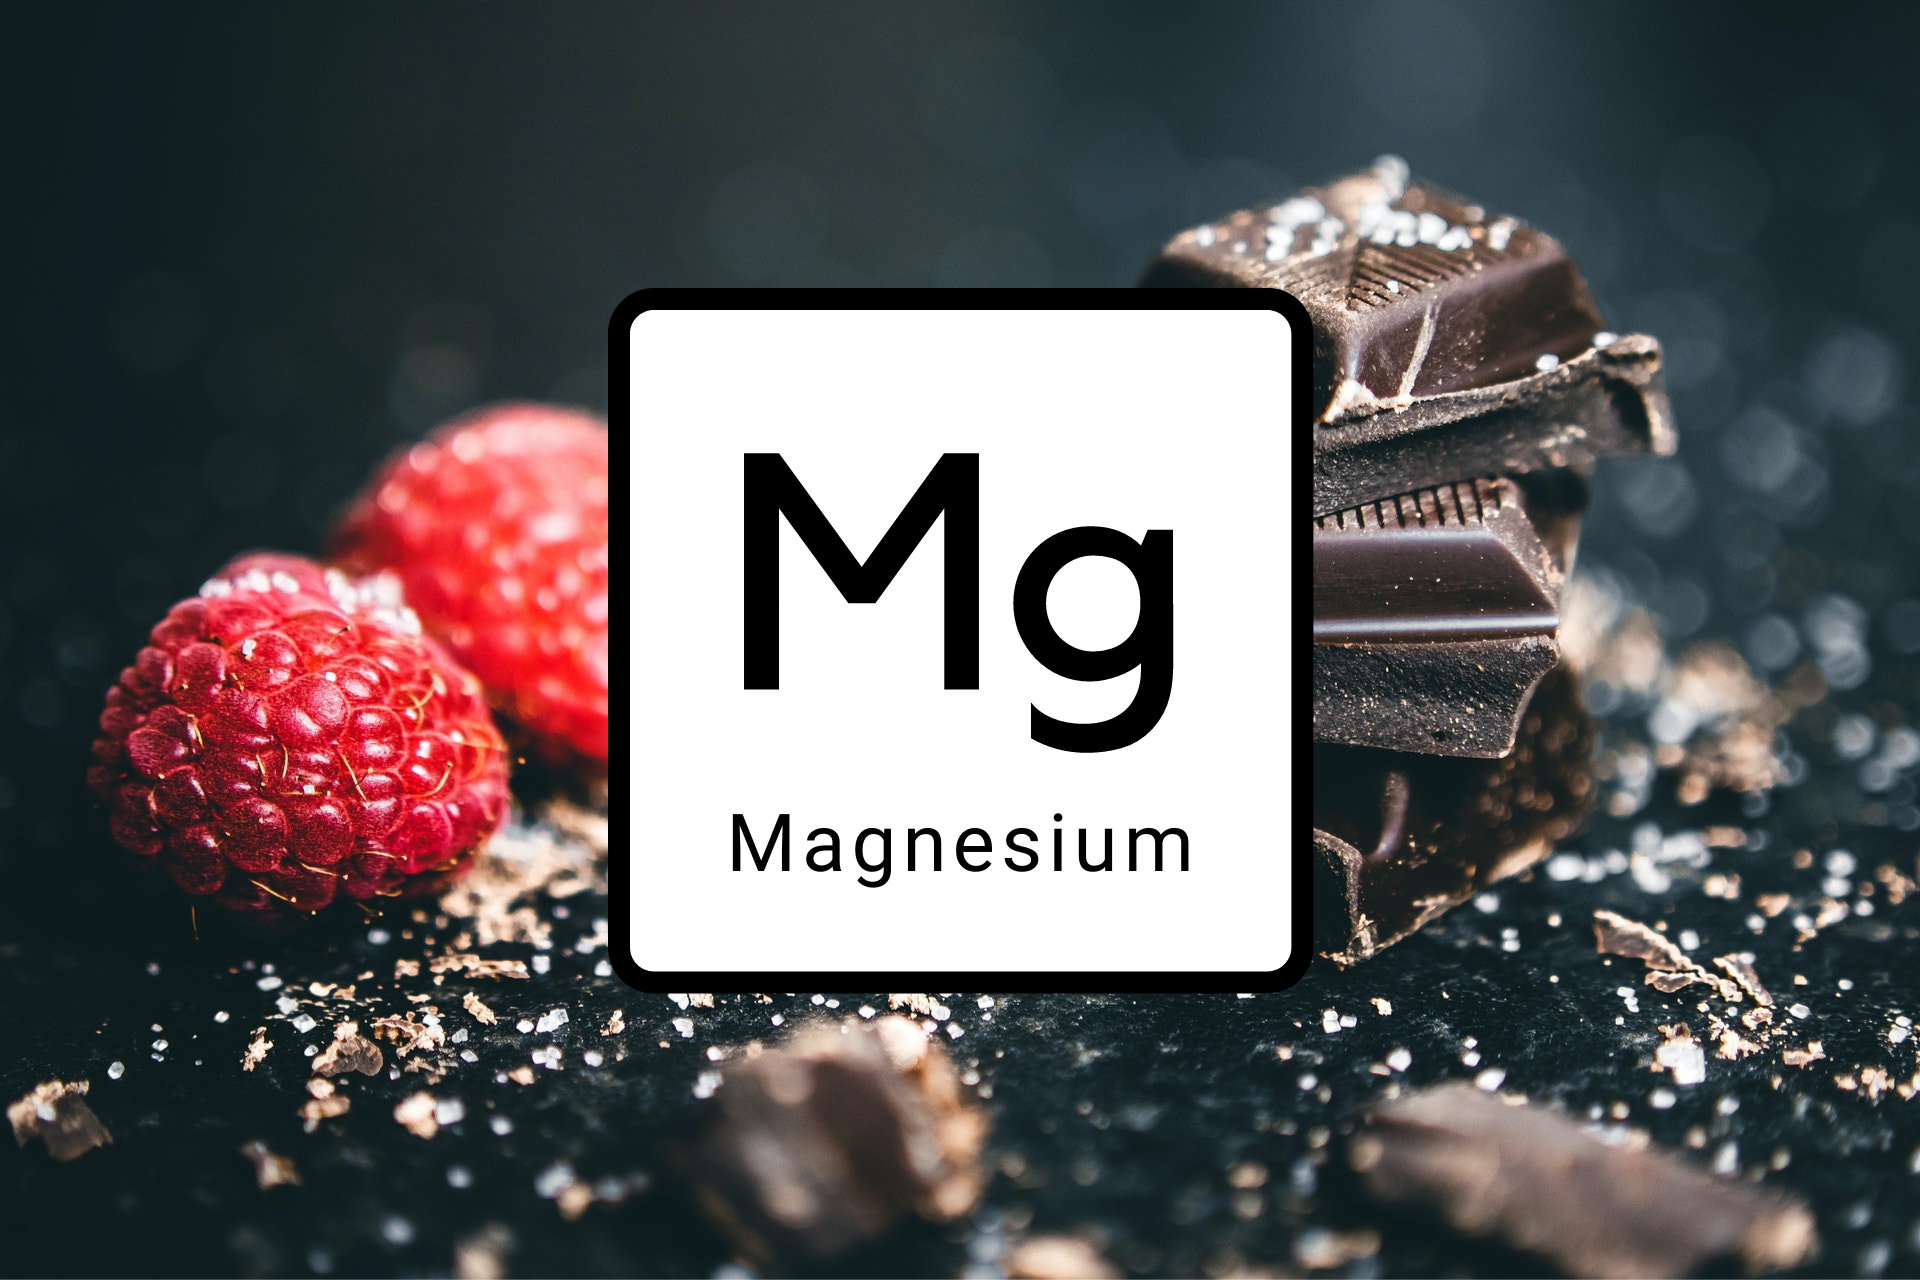 Magnesium in front of berries and chocolate